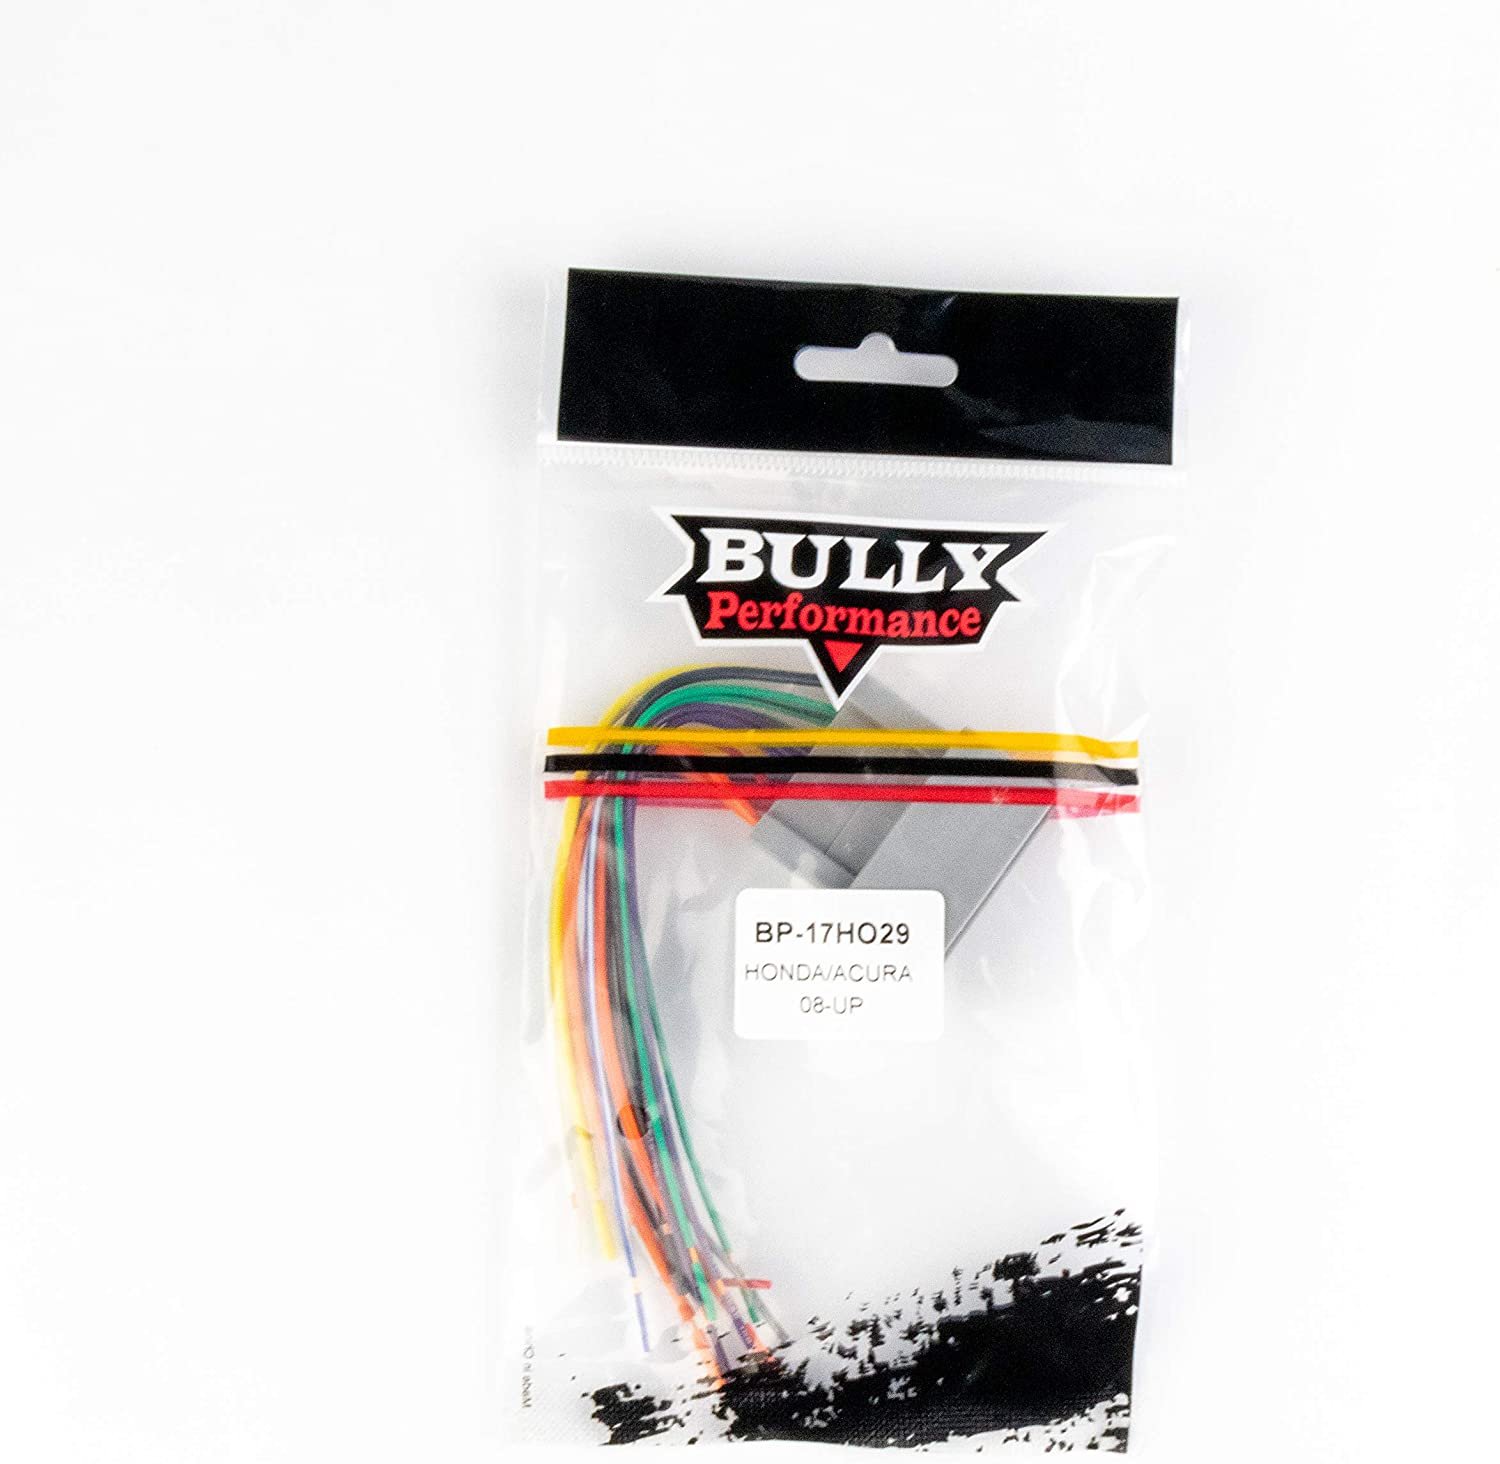 Radio Wiring Harness Bully Performance Audio BP-17HO29 Compatible with Honda//Acura 08-UP